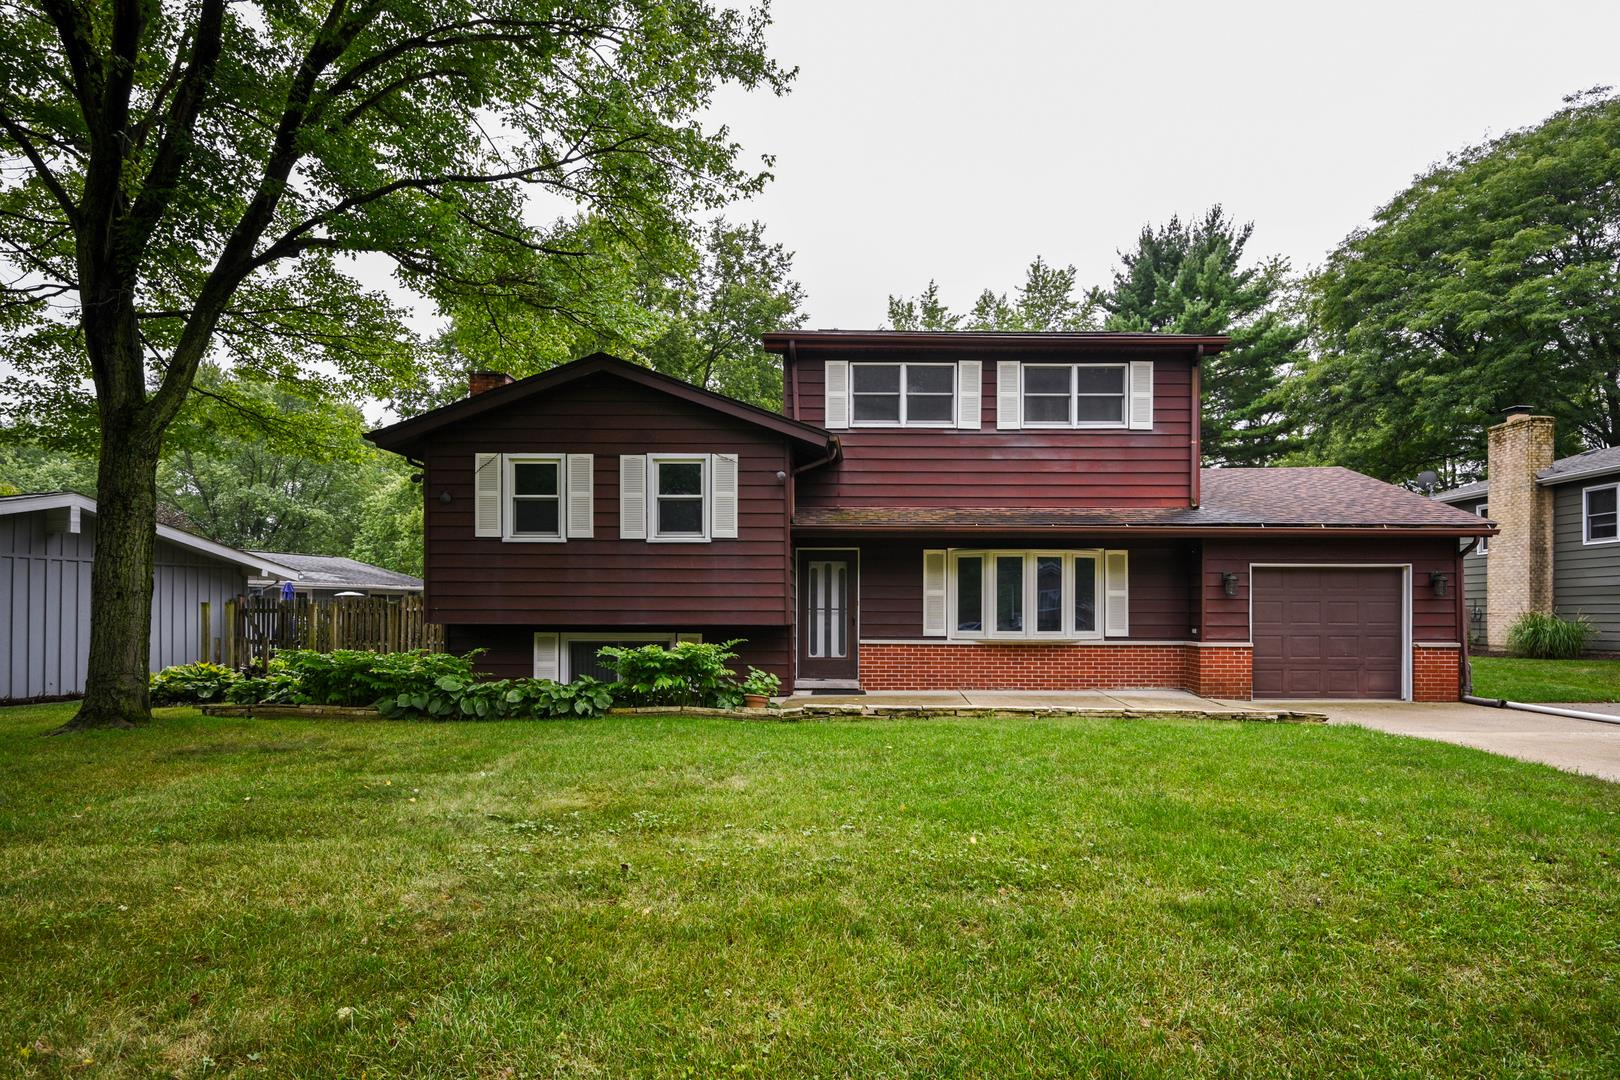 22W311 Birchwood Drive, Glen Ellyn, IL 60137 - #: 10856806